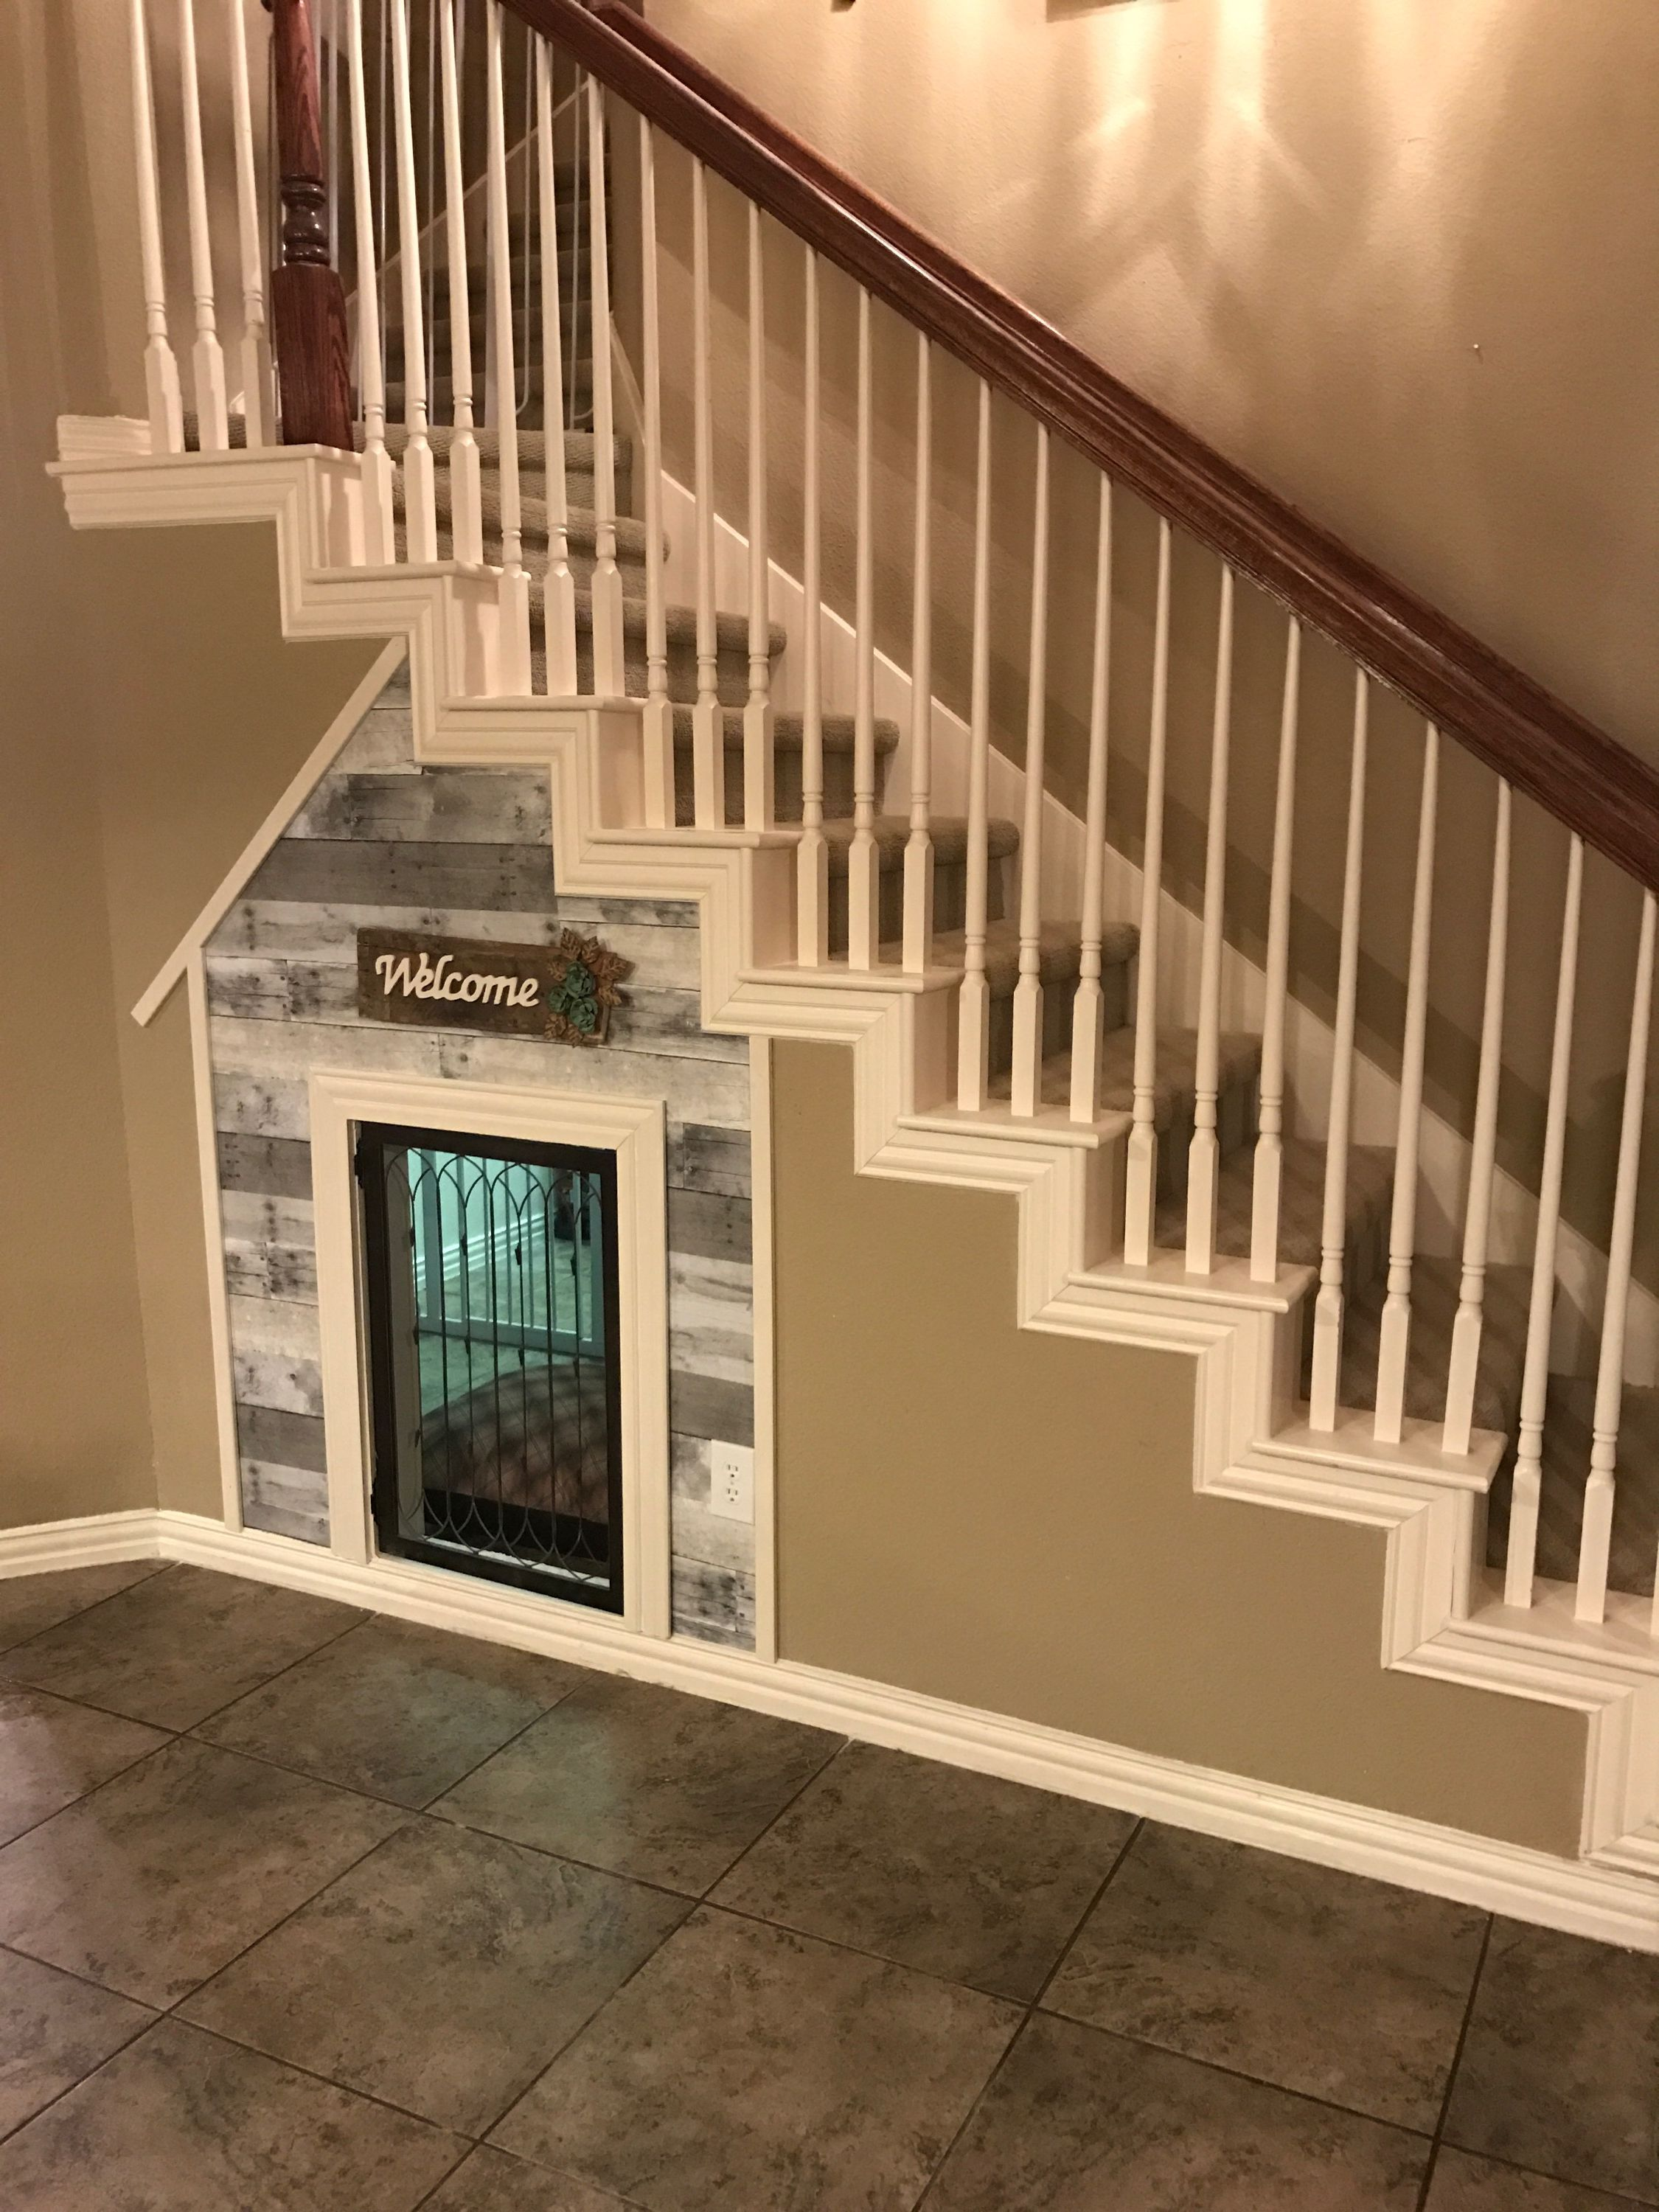 Under the stairs dog house stairway pinterest dog for Room design under stairs